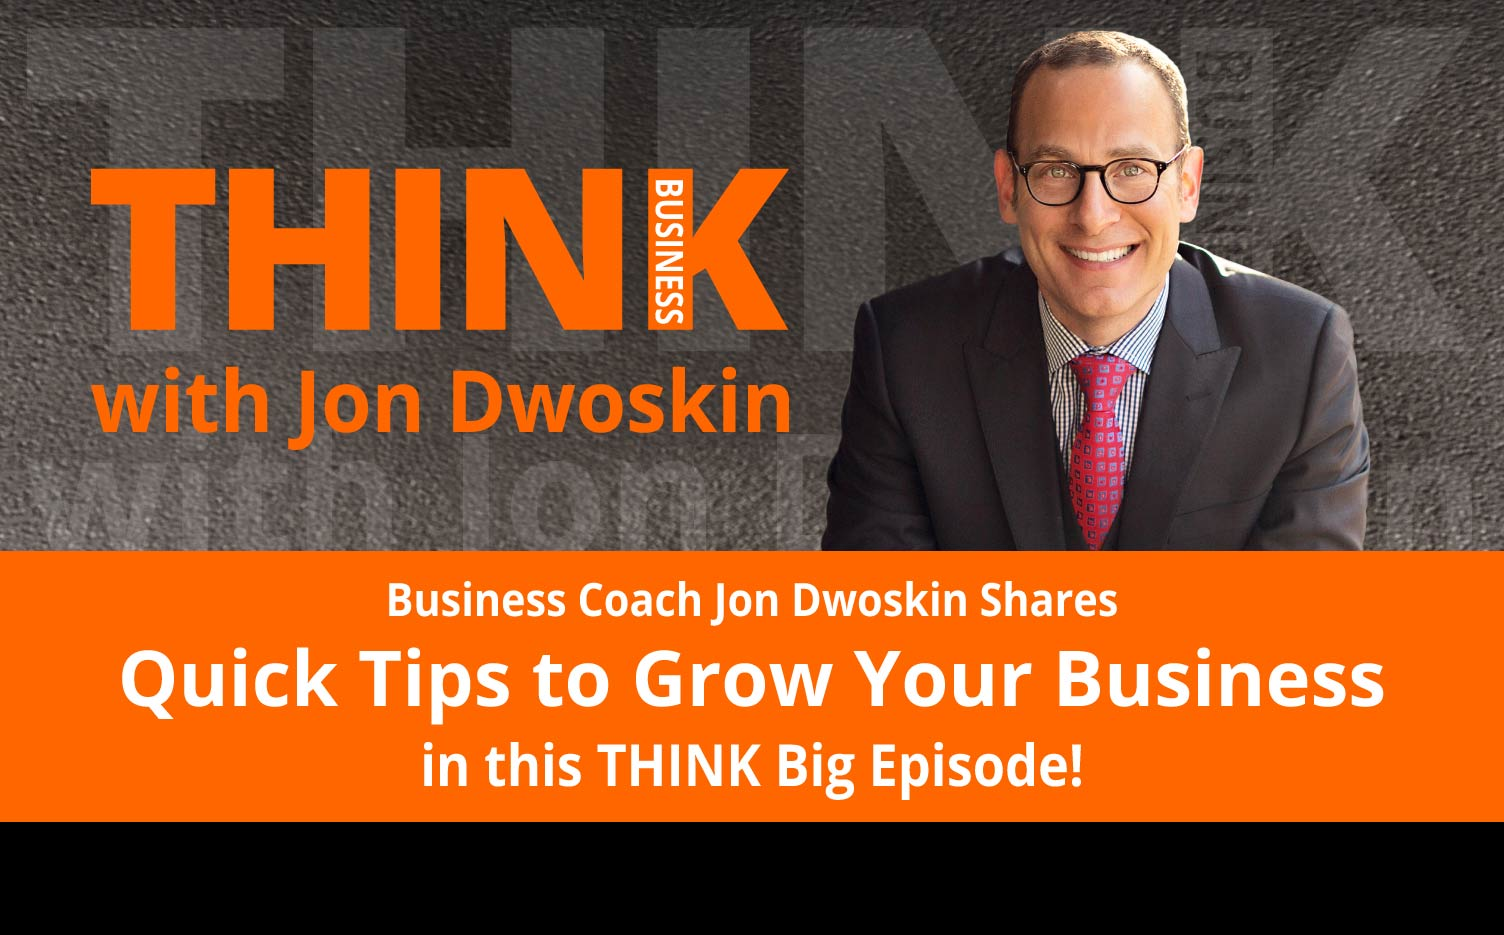 THINK Business Podcast: Today's Quick Tip: Prospect Everyday